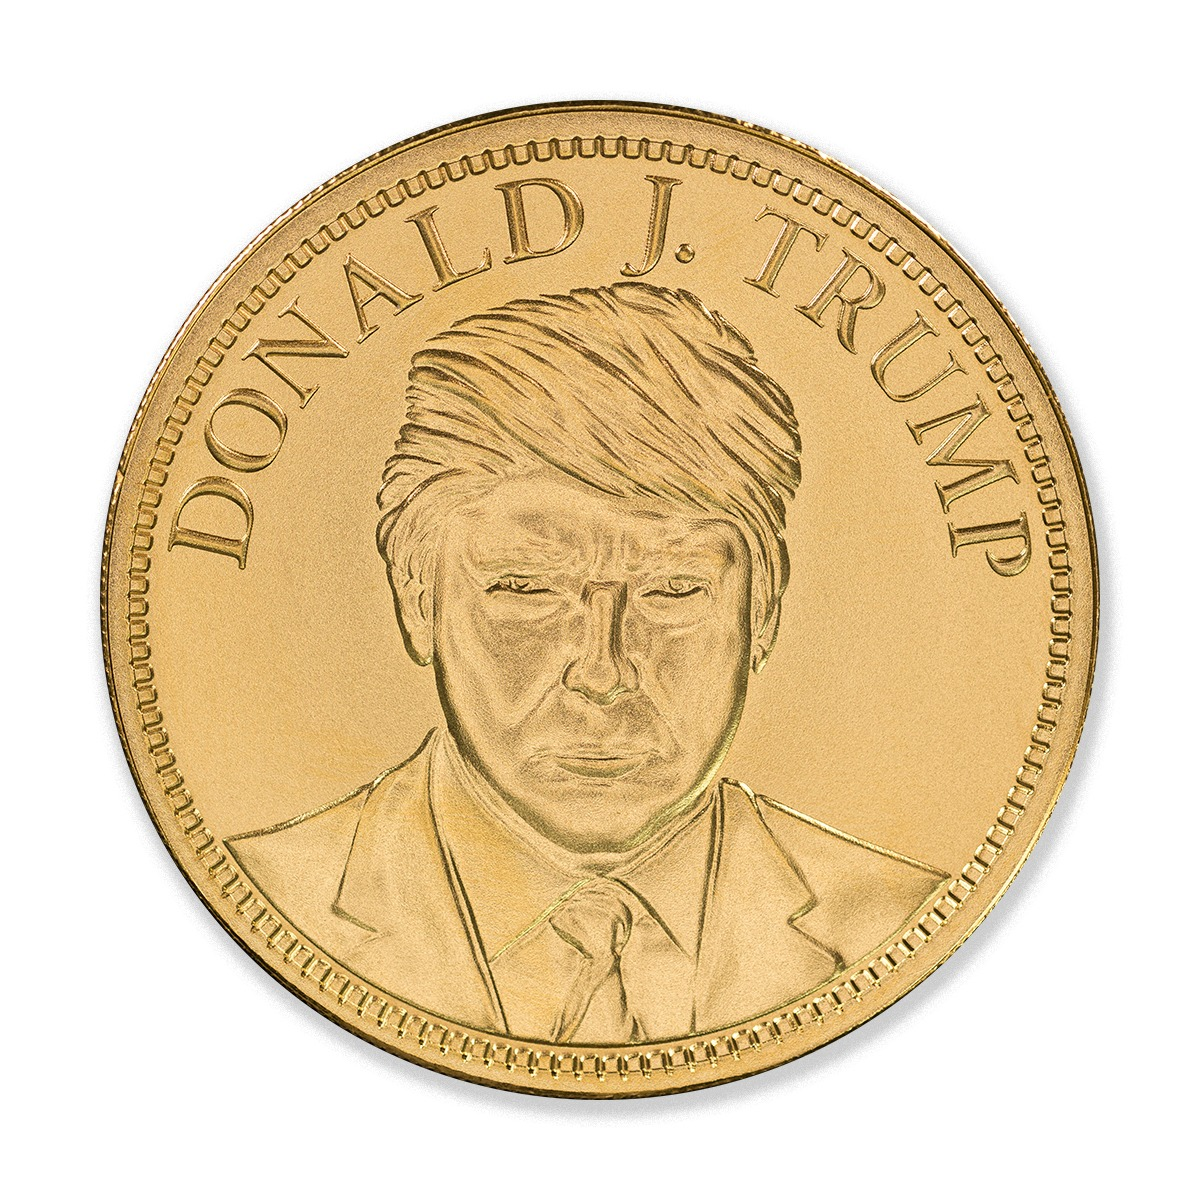 TRUMP INAUGURATION – 3 TROY OUNCE GOLD – 50MM – LIMITED MINTAGE: 45